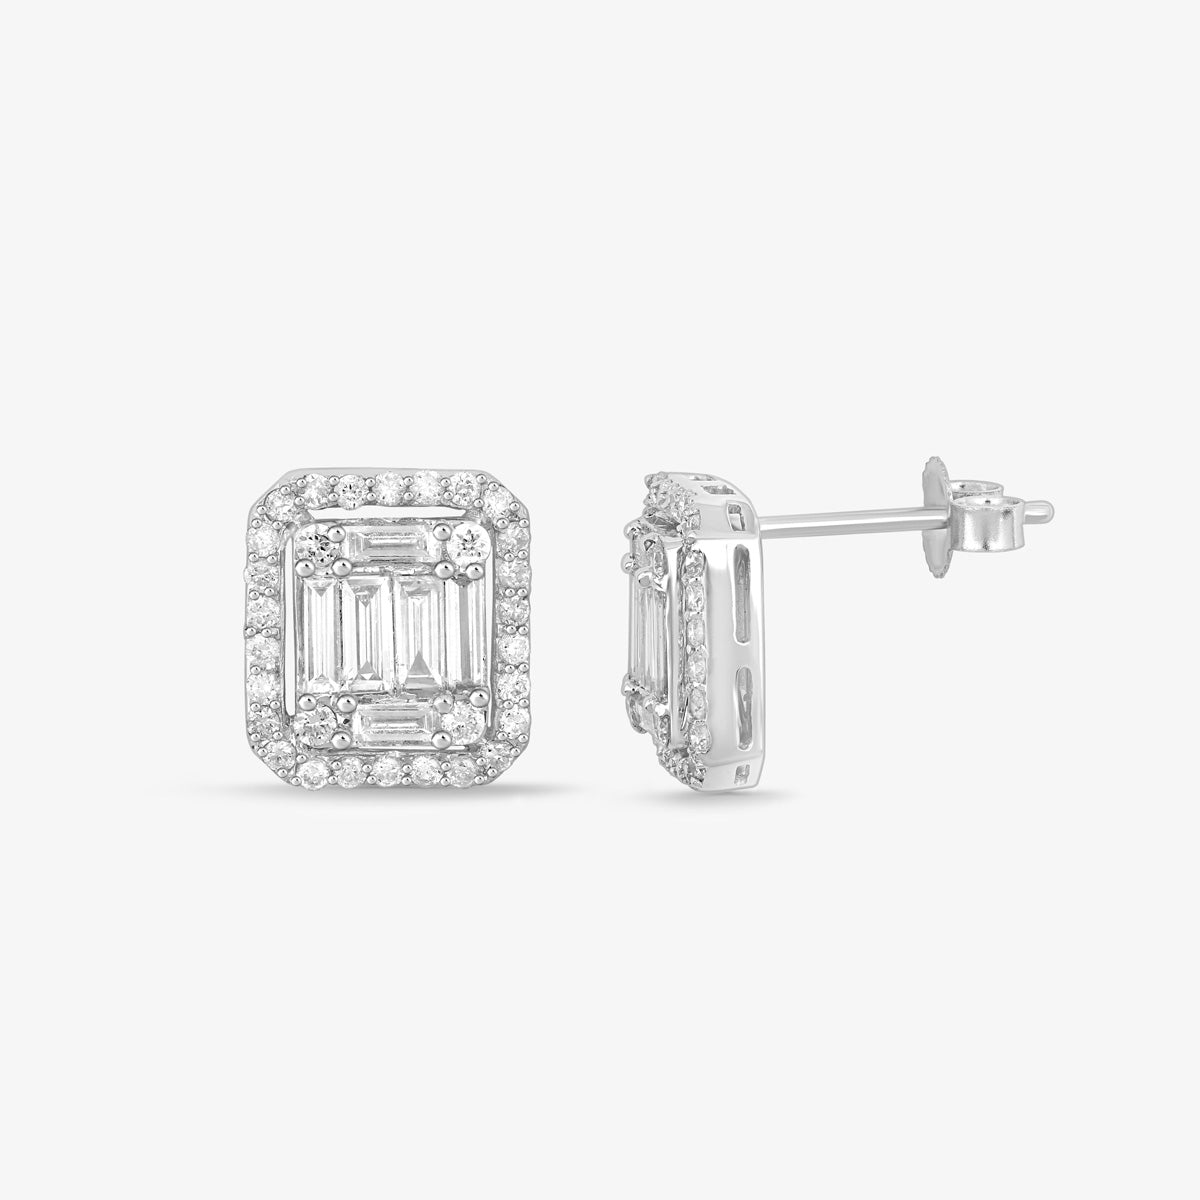 Halo Baguette And Round Diamond And Solid Gold Stud Earrings - estellacollection